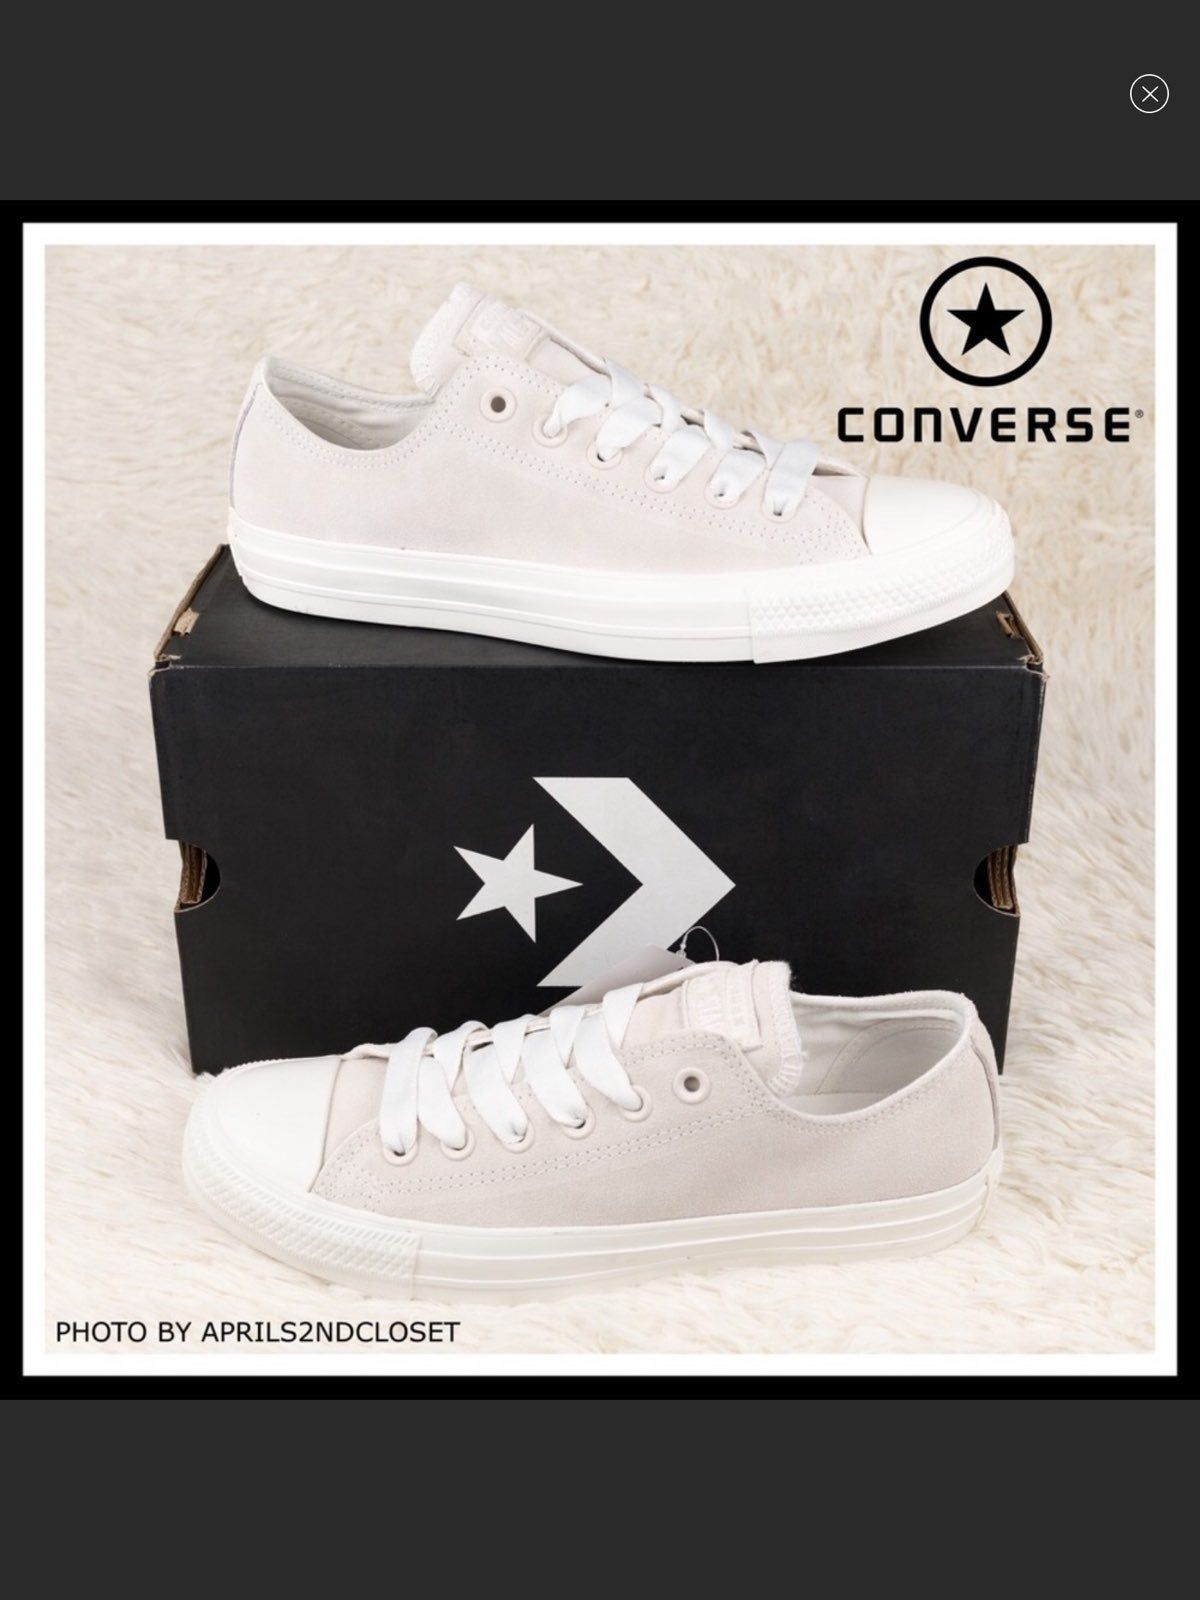 CONVERSE WHITE SUEDE LO OX LOW TOPS BIG EYELET SNEAKERS NEW